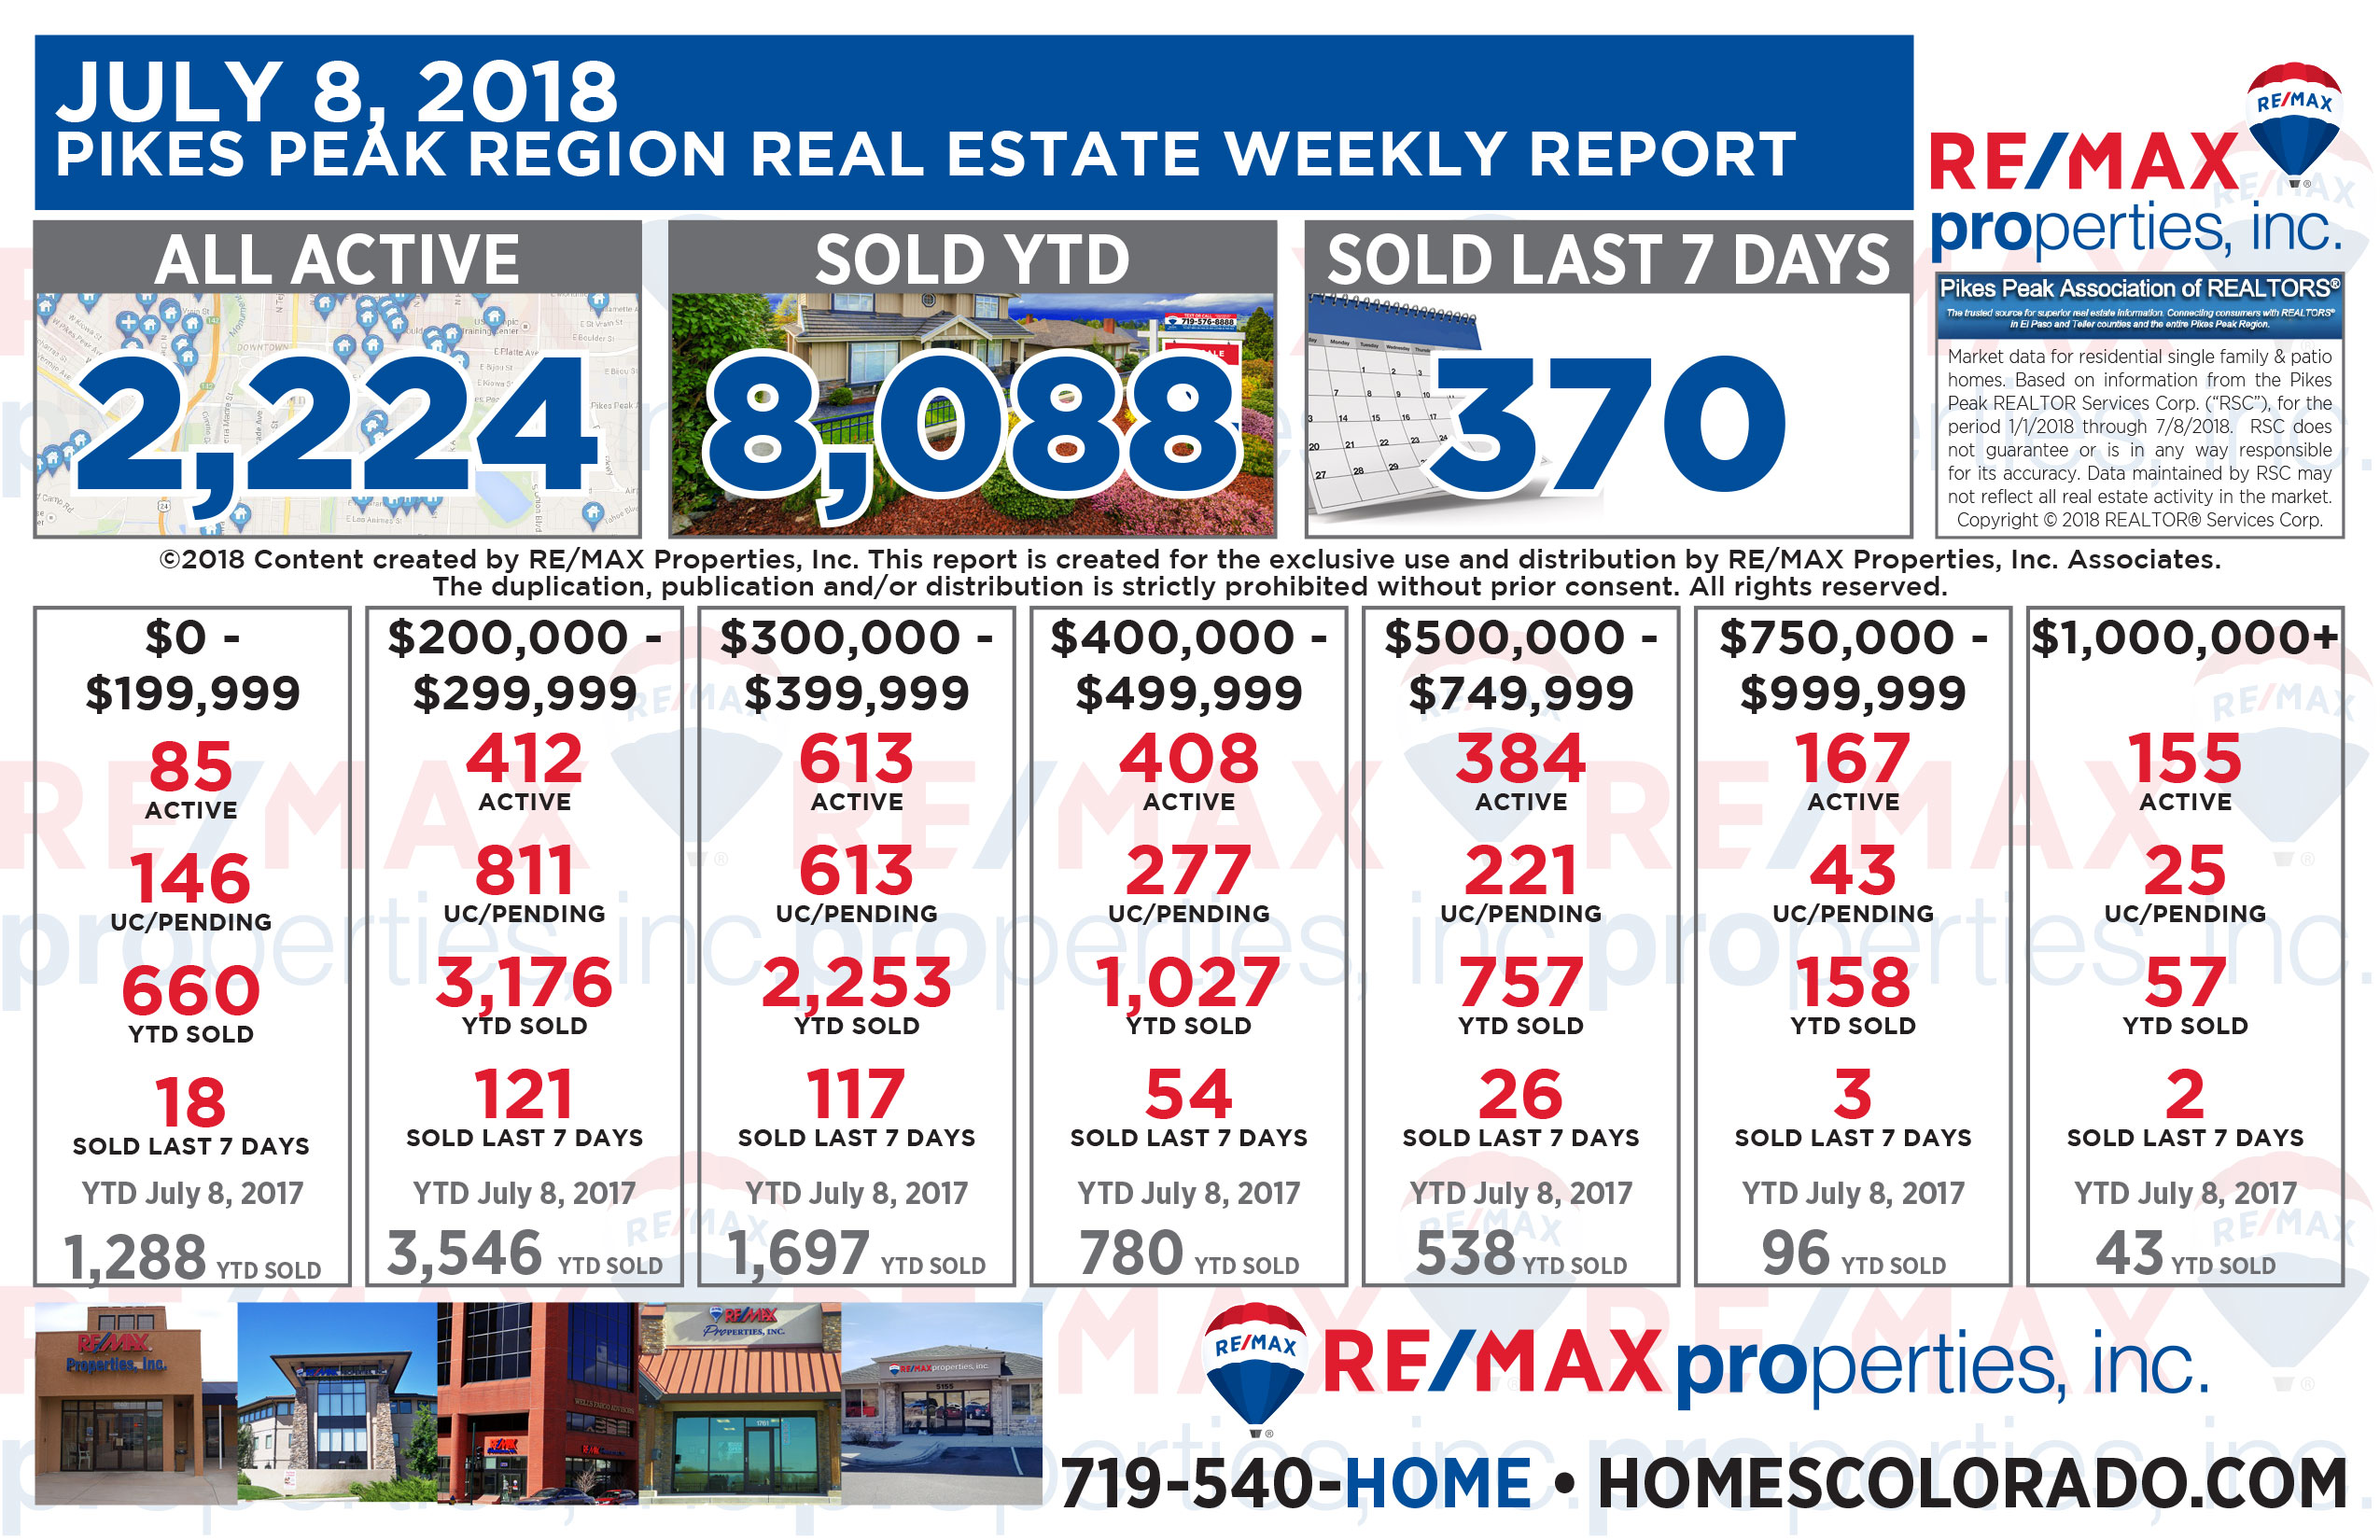 Colorado Springs Real Estate Market Weekly Update - July 8, 2018